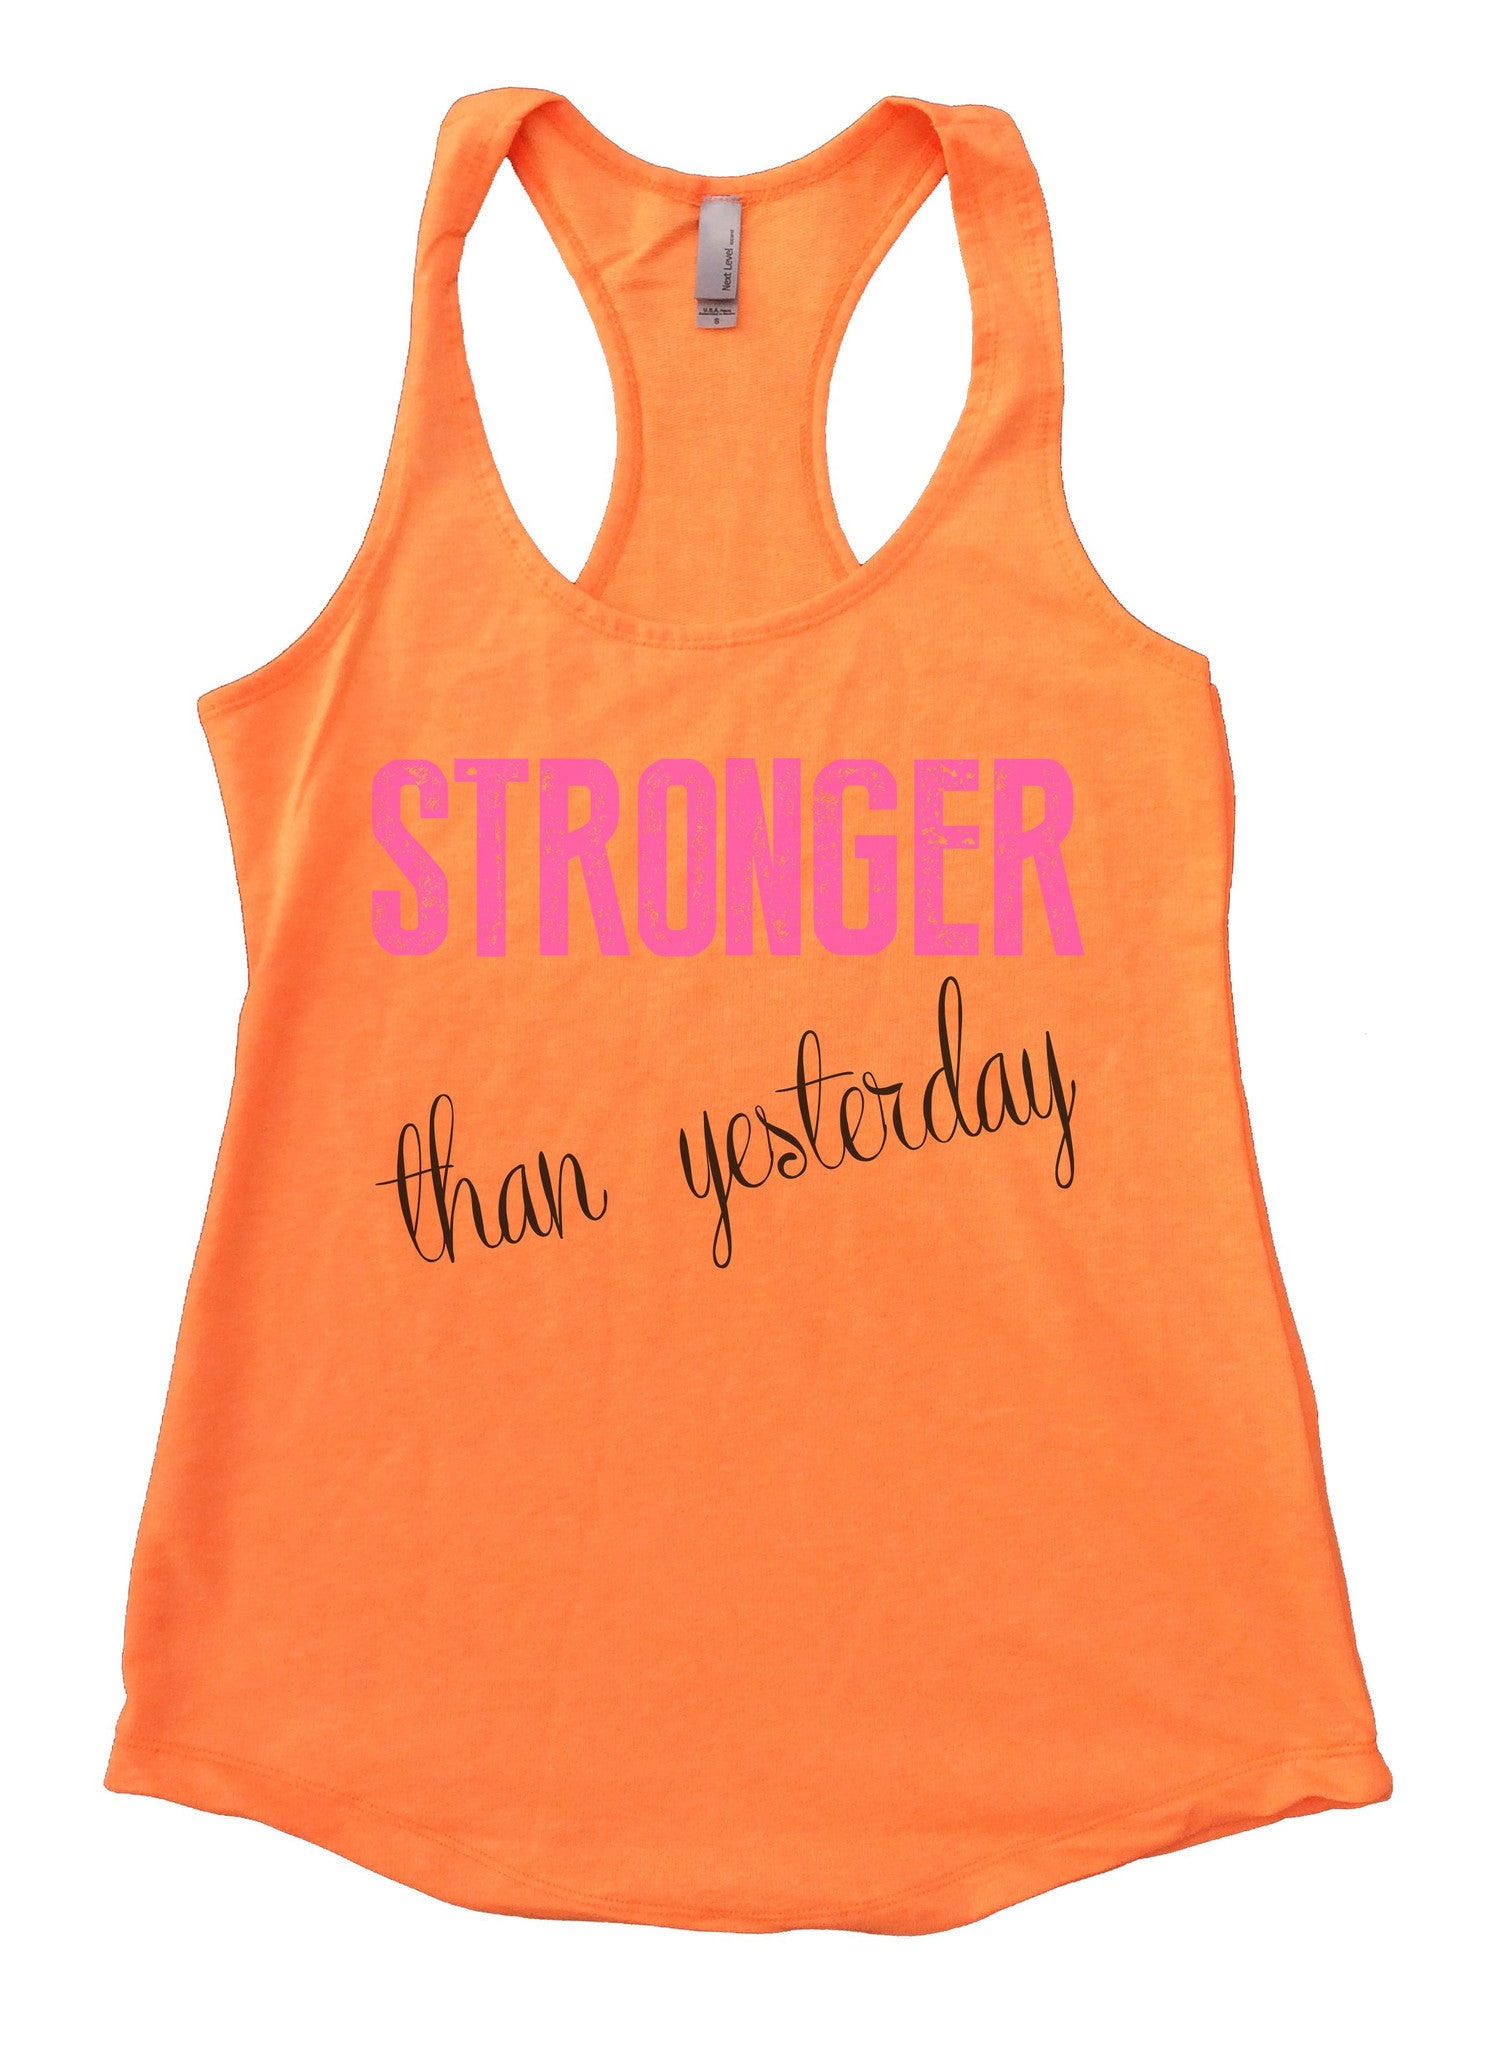 Stronger Than Yesterday Womens Workout Tank Top F768 - Funny Shirts Tank Tops Burnouts and Triblends  - 6